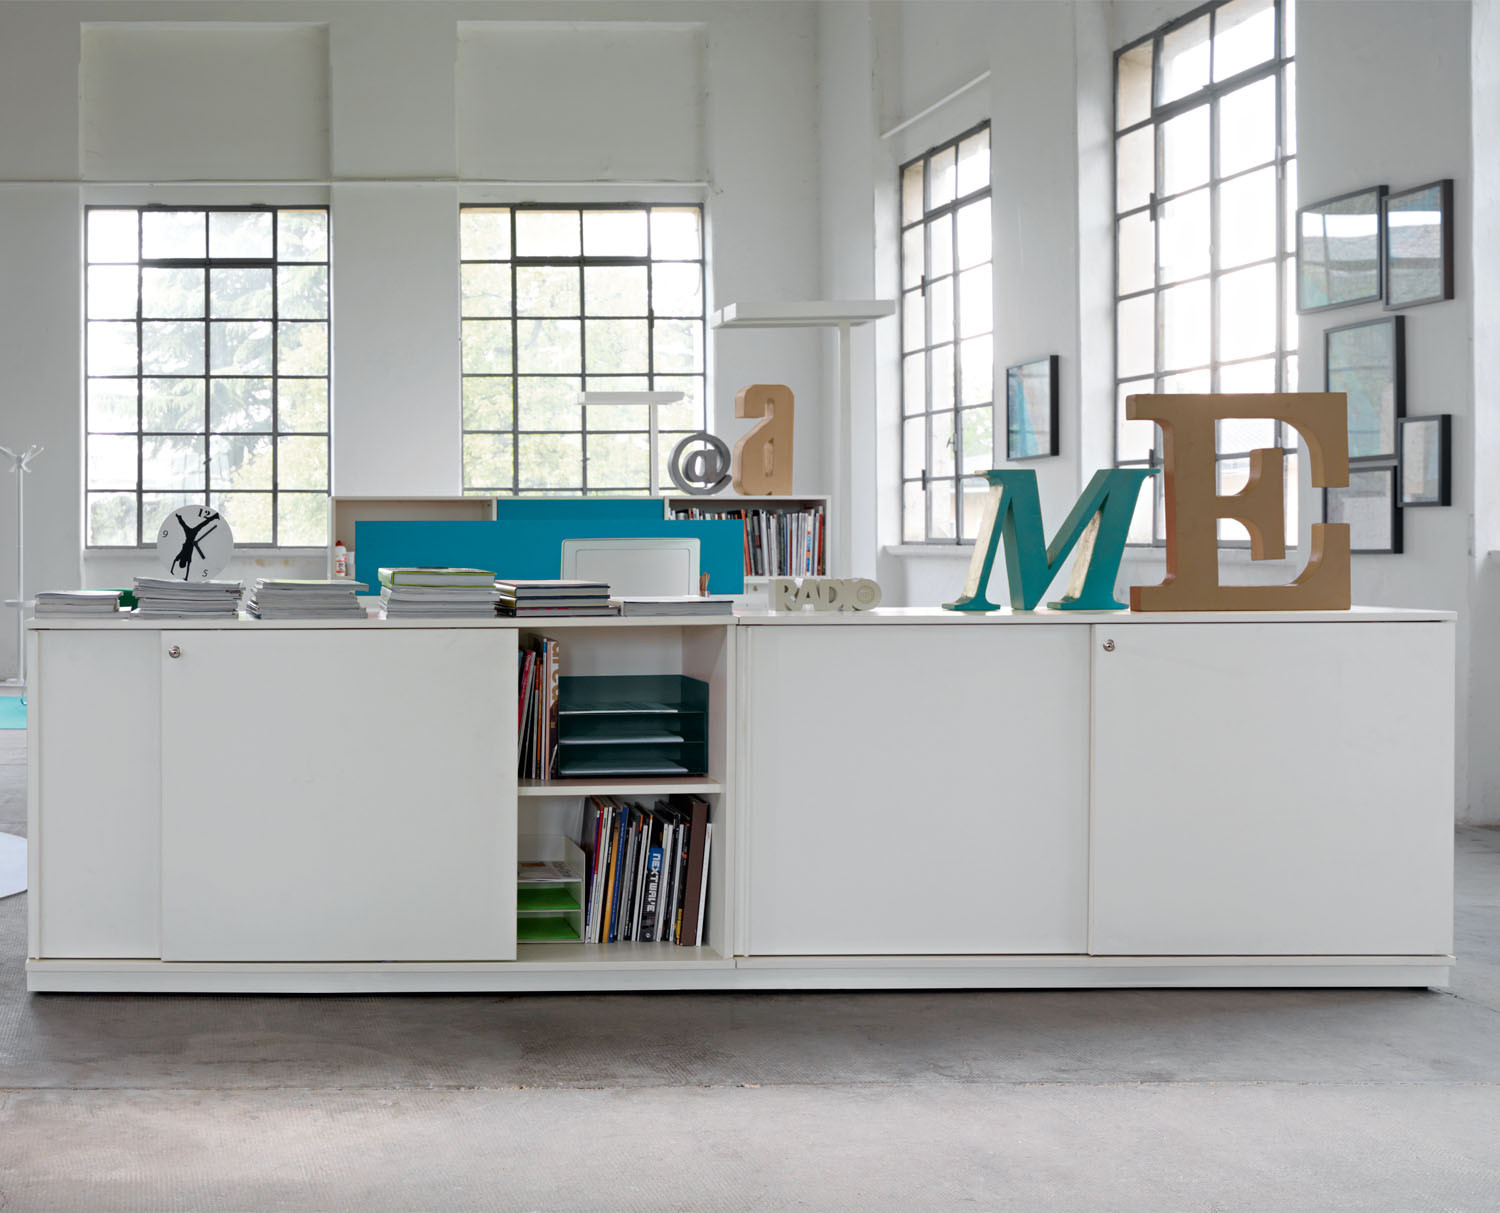 use me office storage  sinetica use me storage  apres furniture -  use me storage cabinets by sinetica